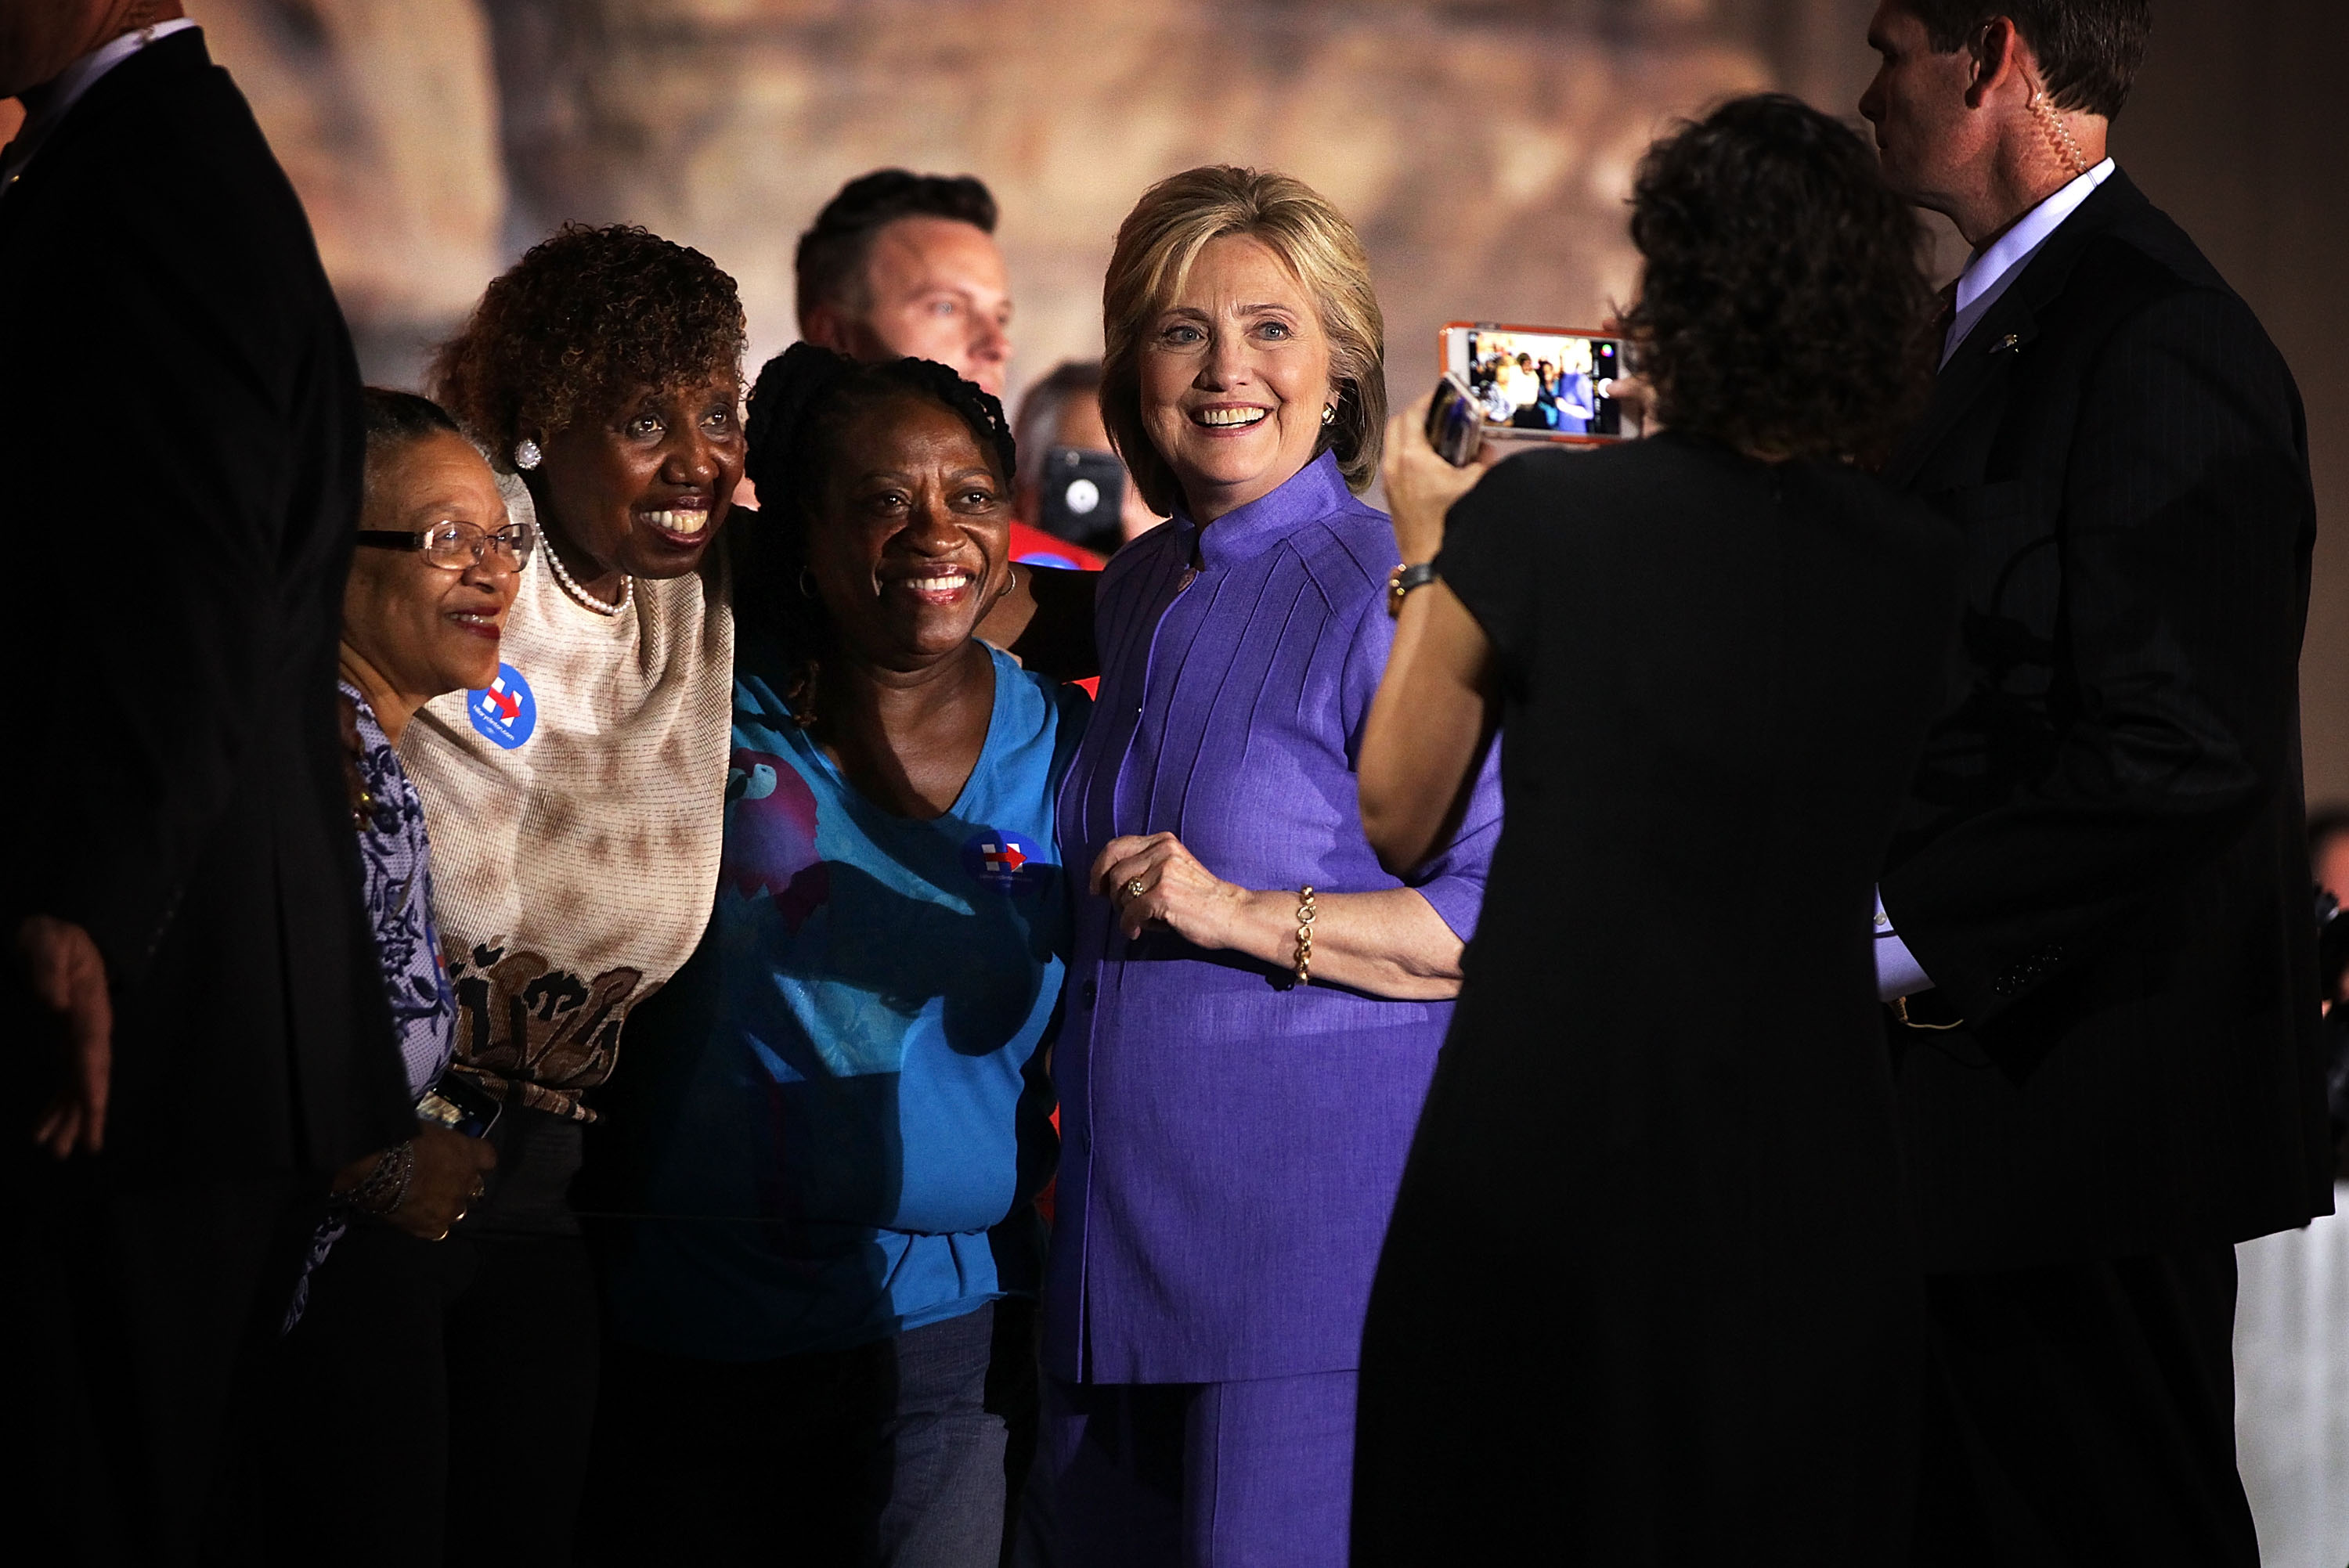 Hillary Clinton Campaigns In Las Vegas Day After Debate